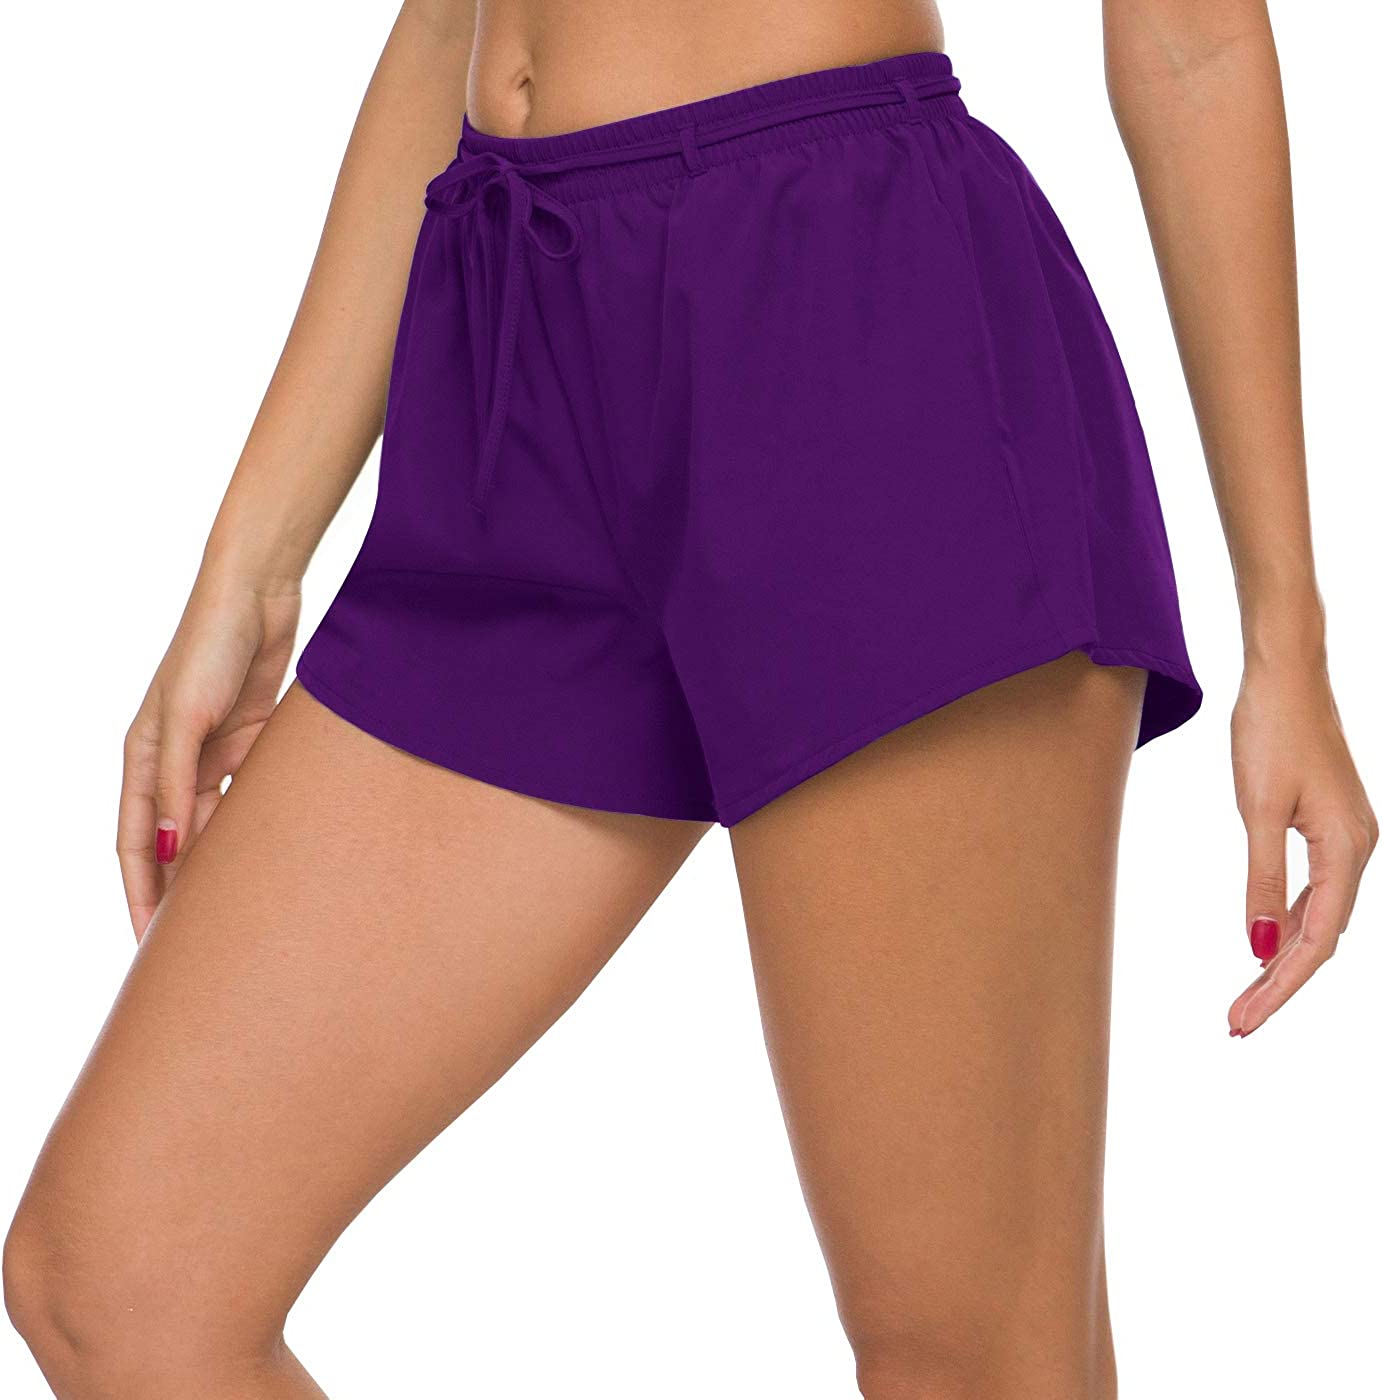 ChinFun Womens Loose Fit Quick-Drying Lightweight Running Shorts Built in Lining Trunks Drawdcord Size Pockets Solid Colors